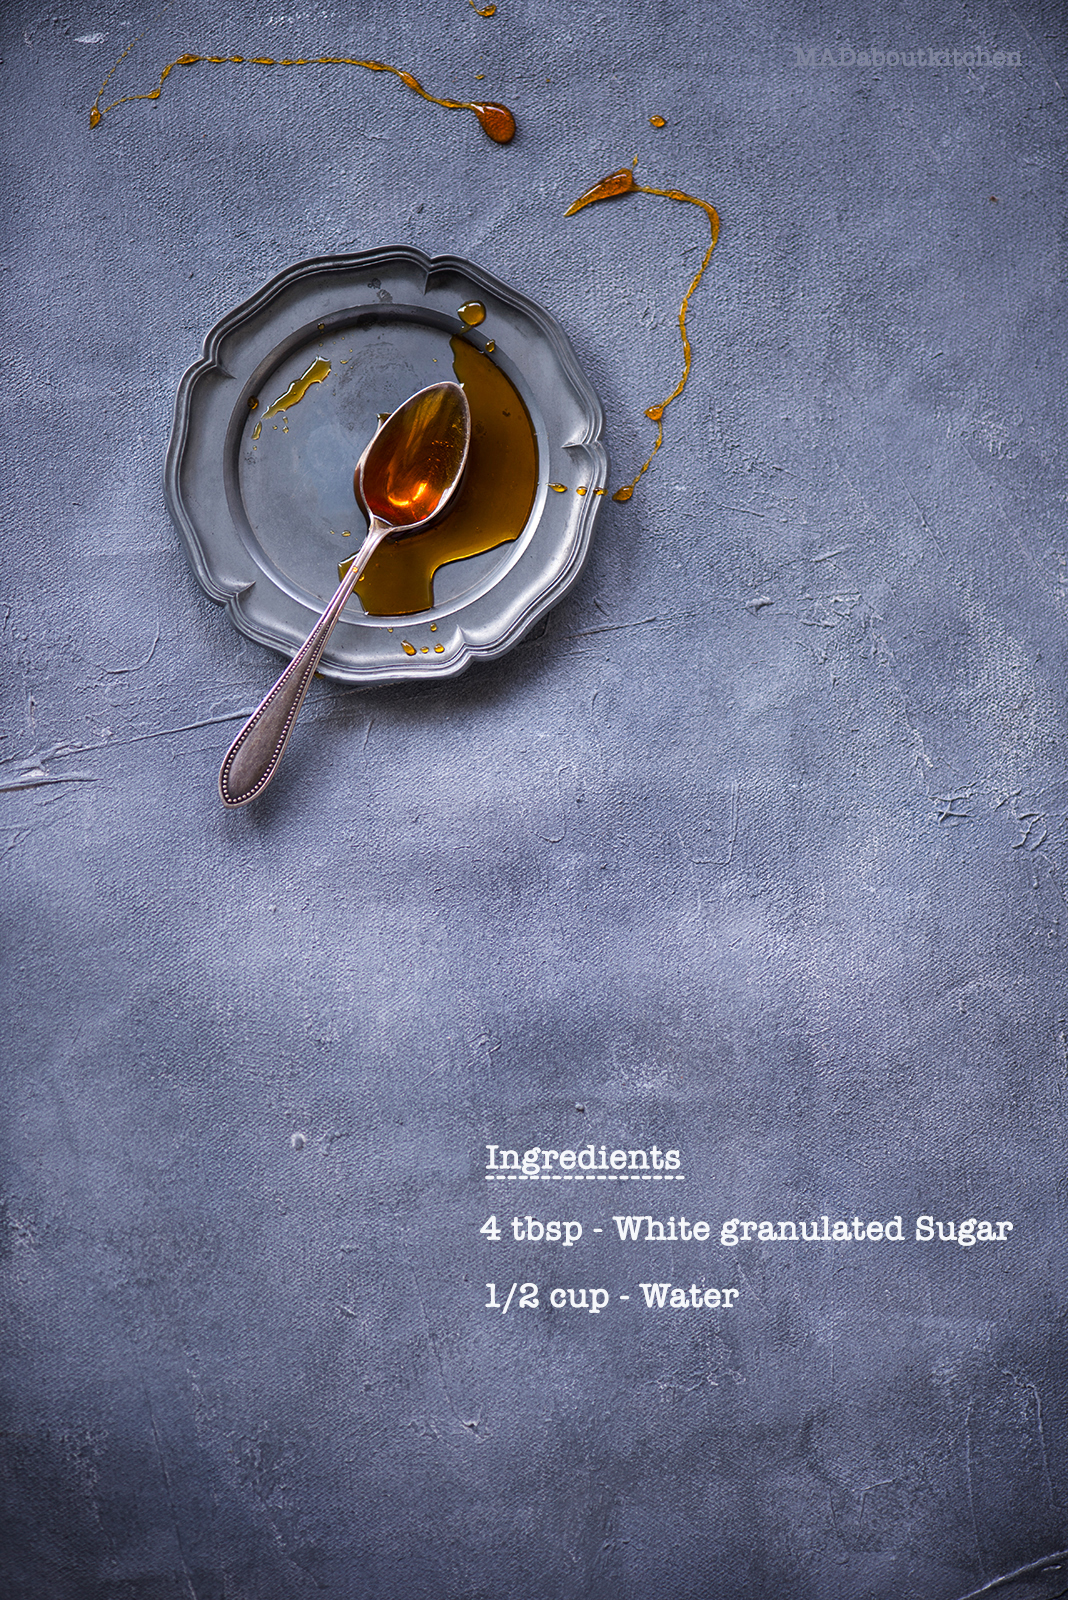 Caramel Syrup, is made by caramelising sugar. Caramel Syrup resembles Honey orMaple Syrup and is abasic syrup that is vastly used in desserts.